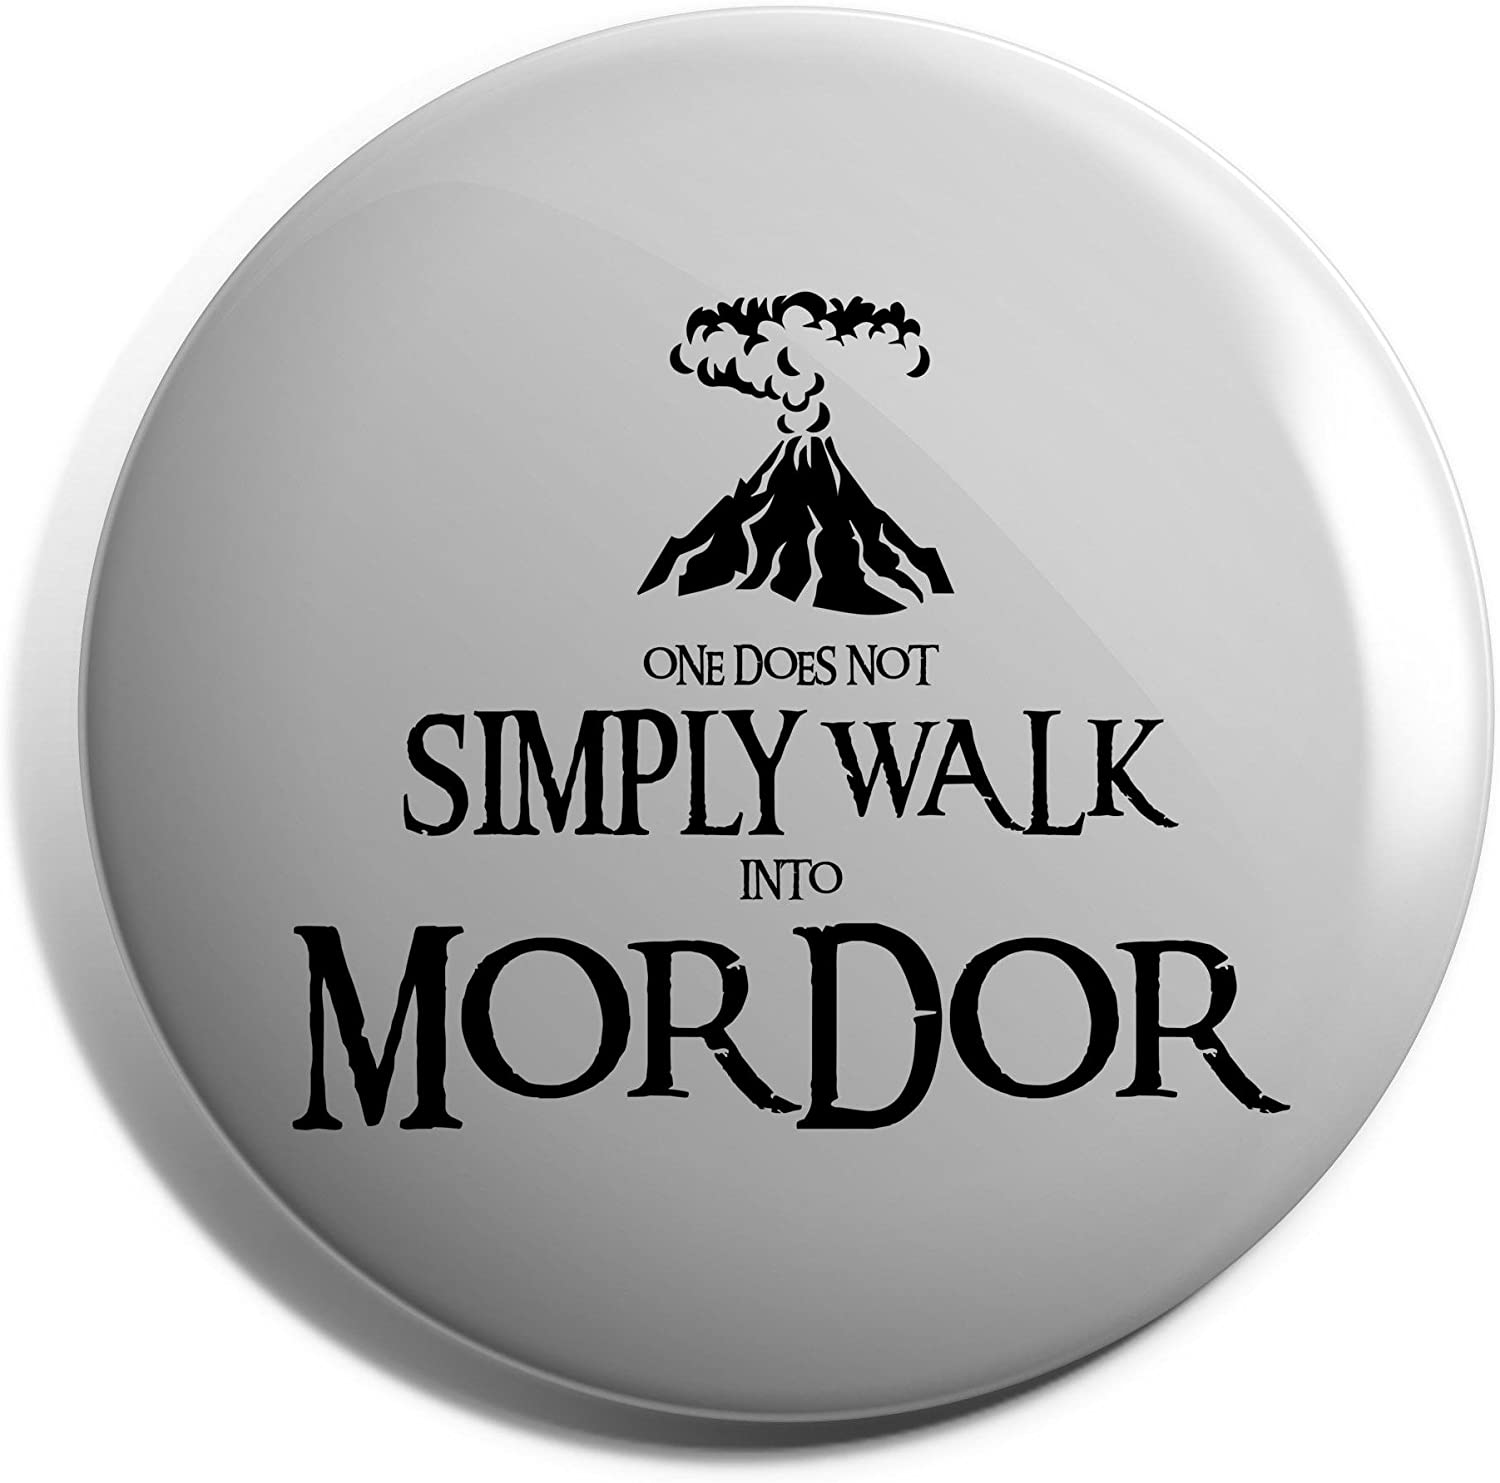 Hippowarehouse One does not simply walk into mordor Badge Pin